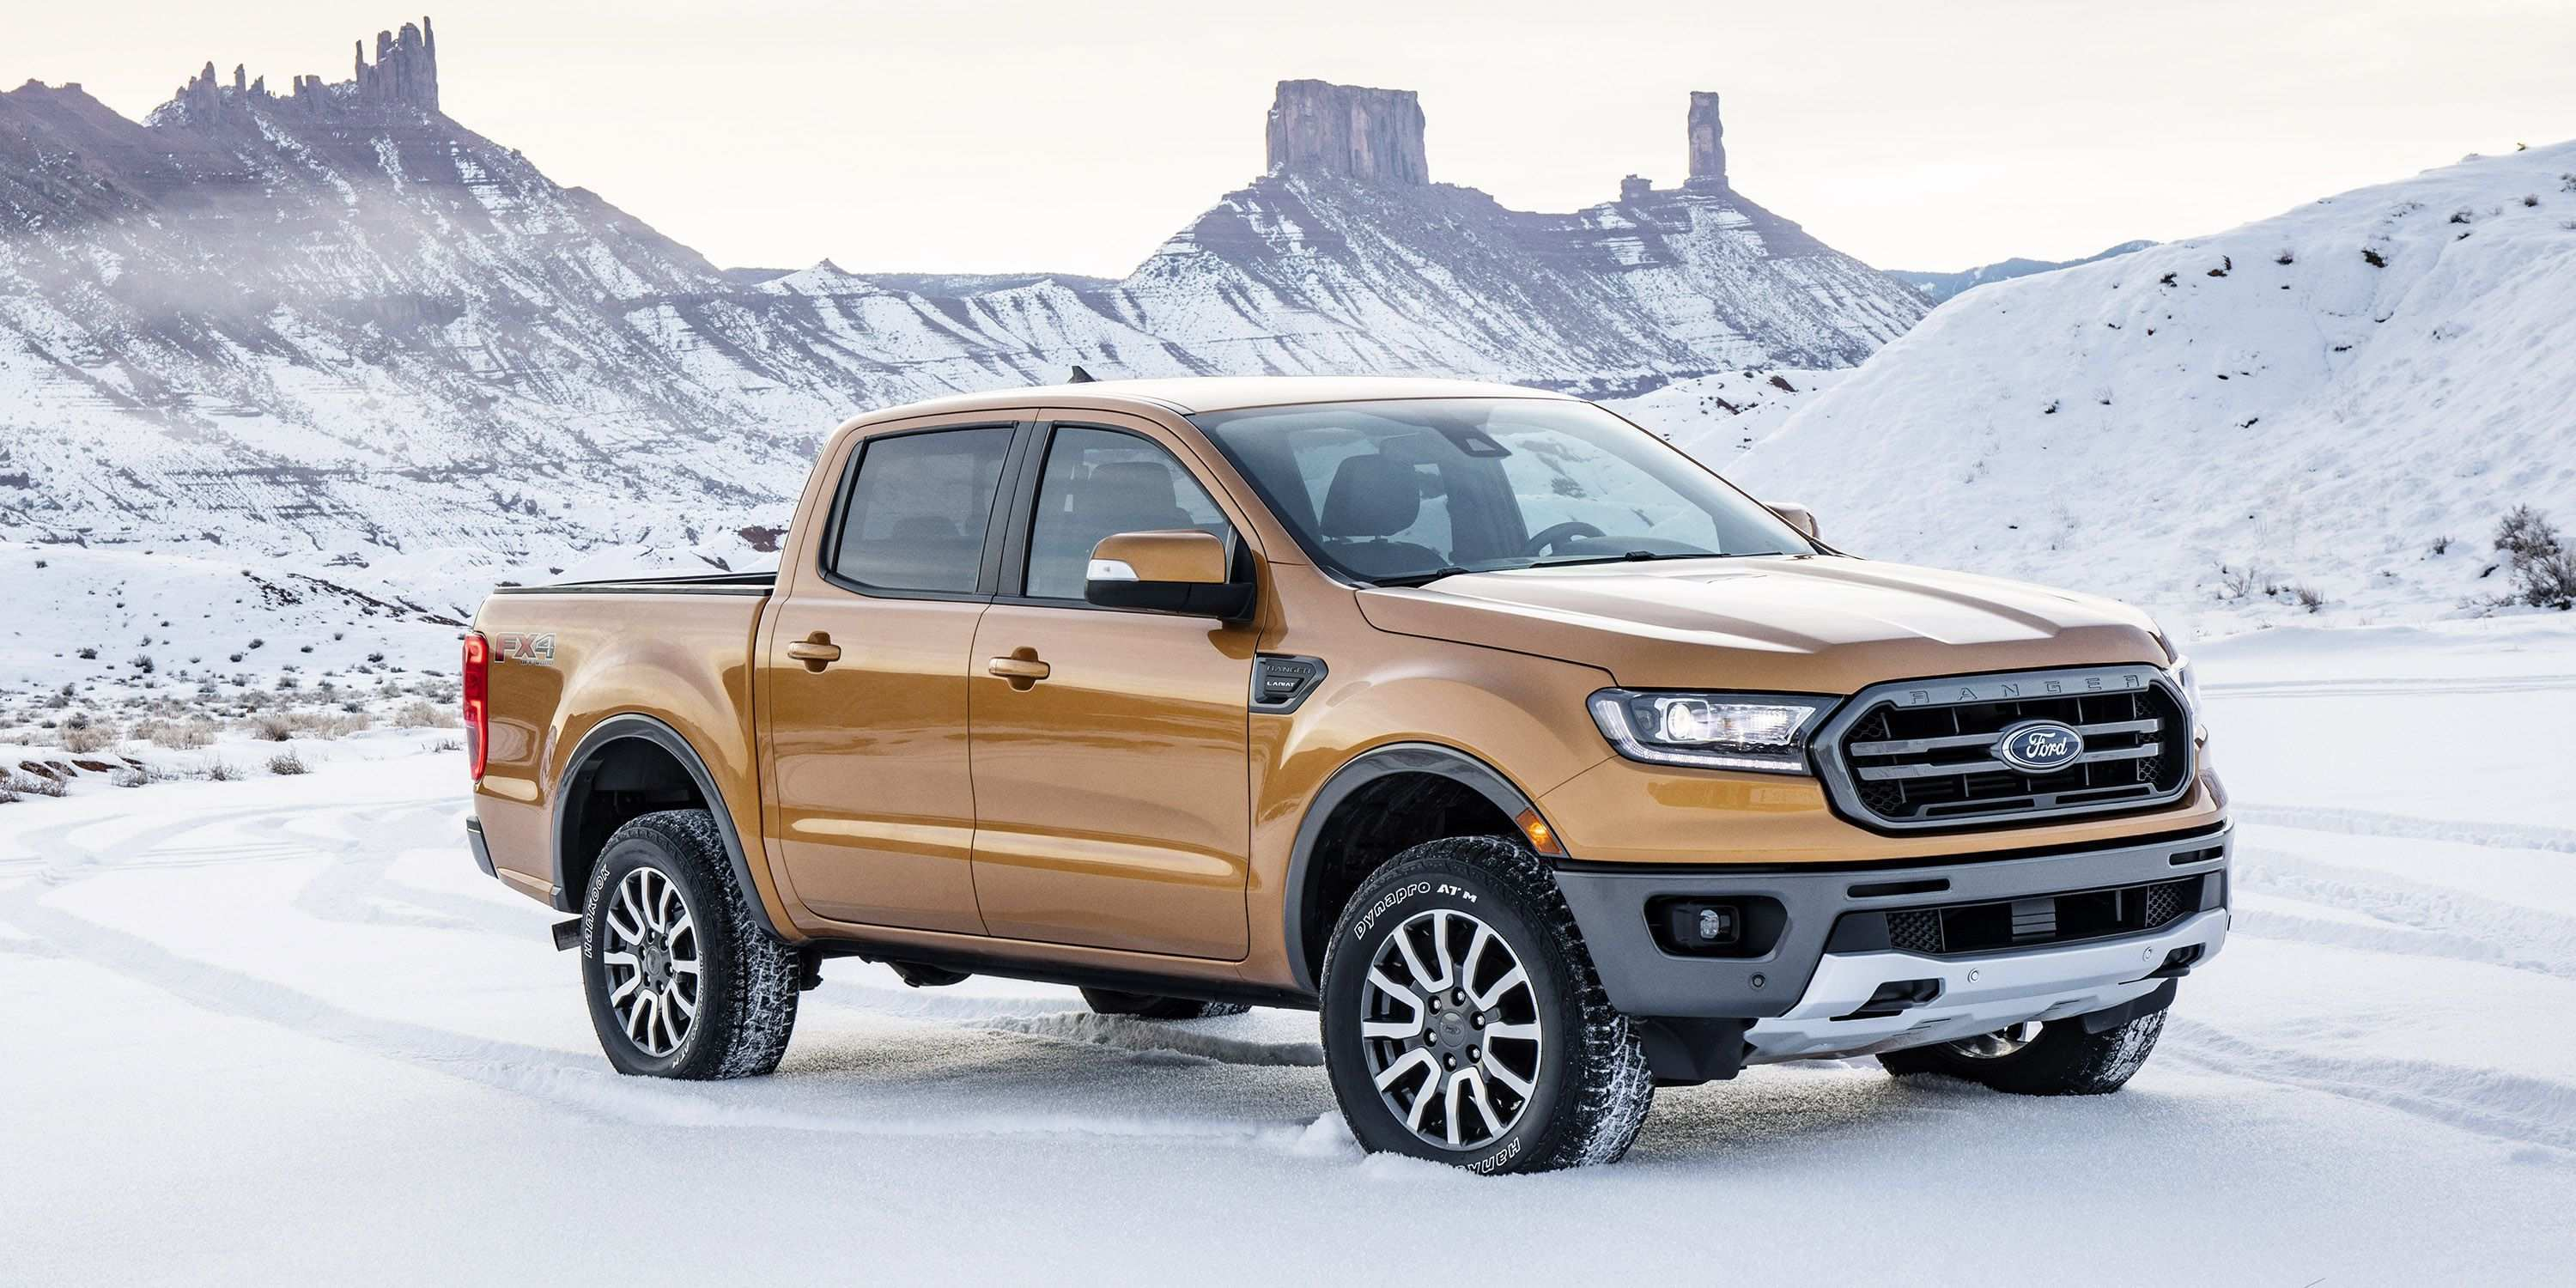 90 Concept of 2020 Ford Ranger Specs New Concept for 2020 Ford Ranger Specs